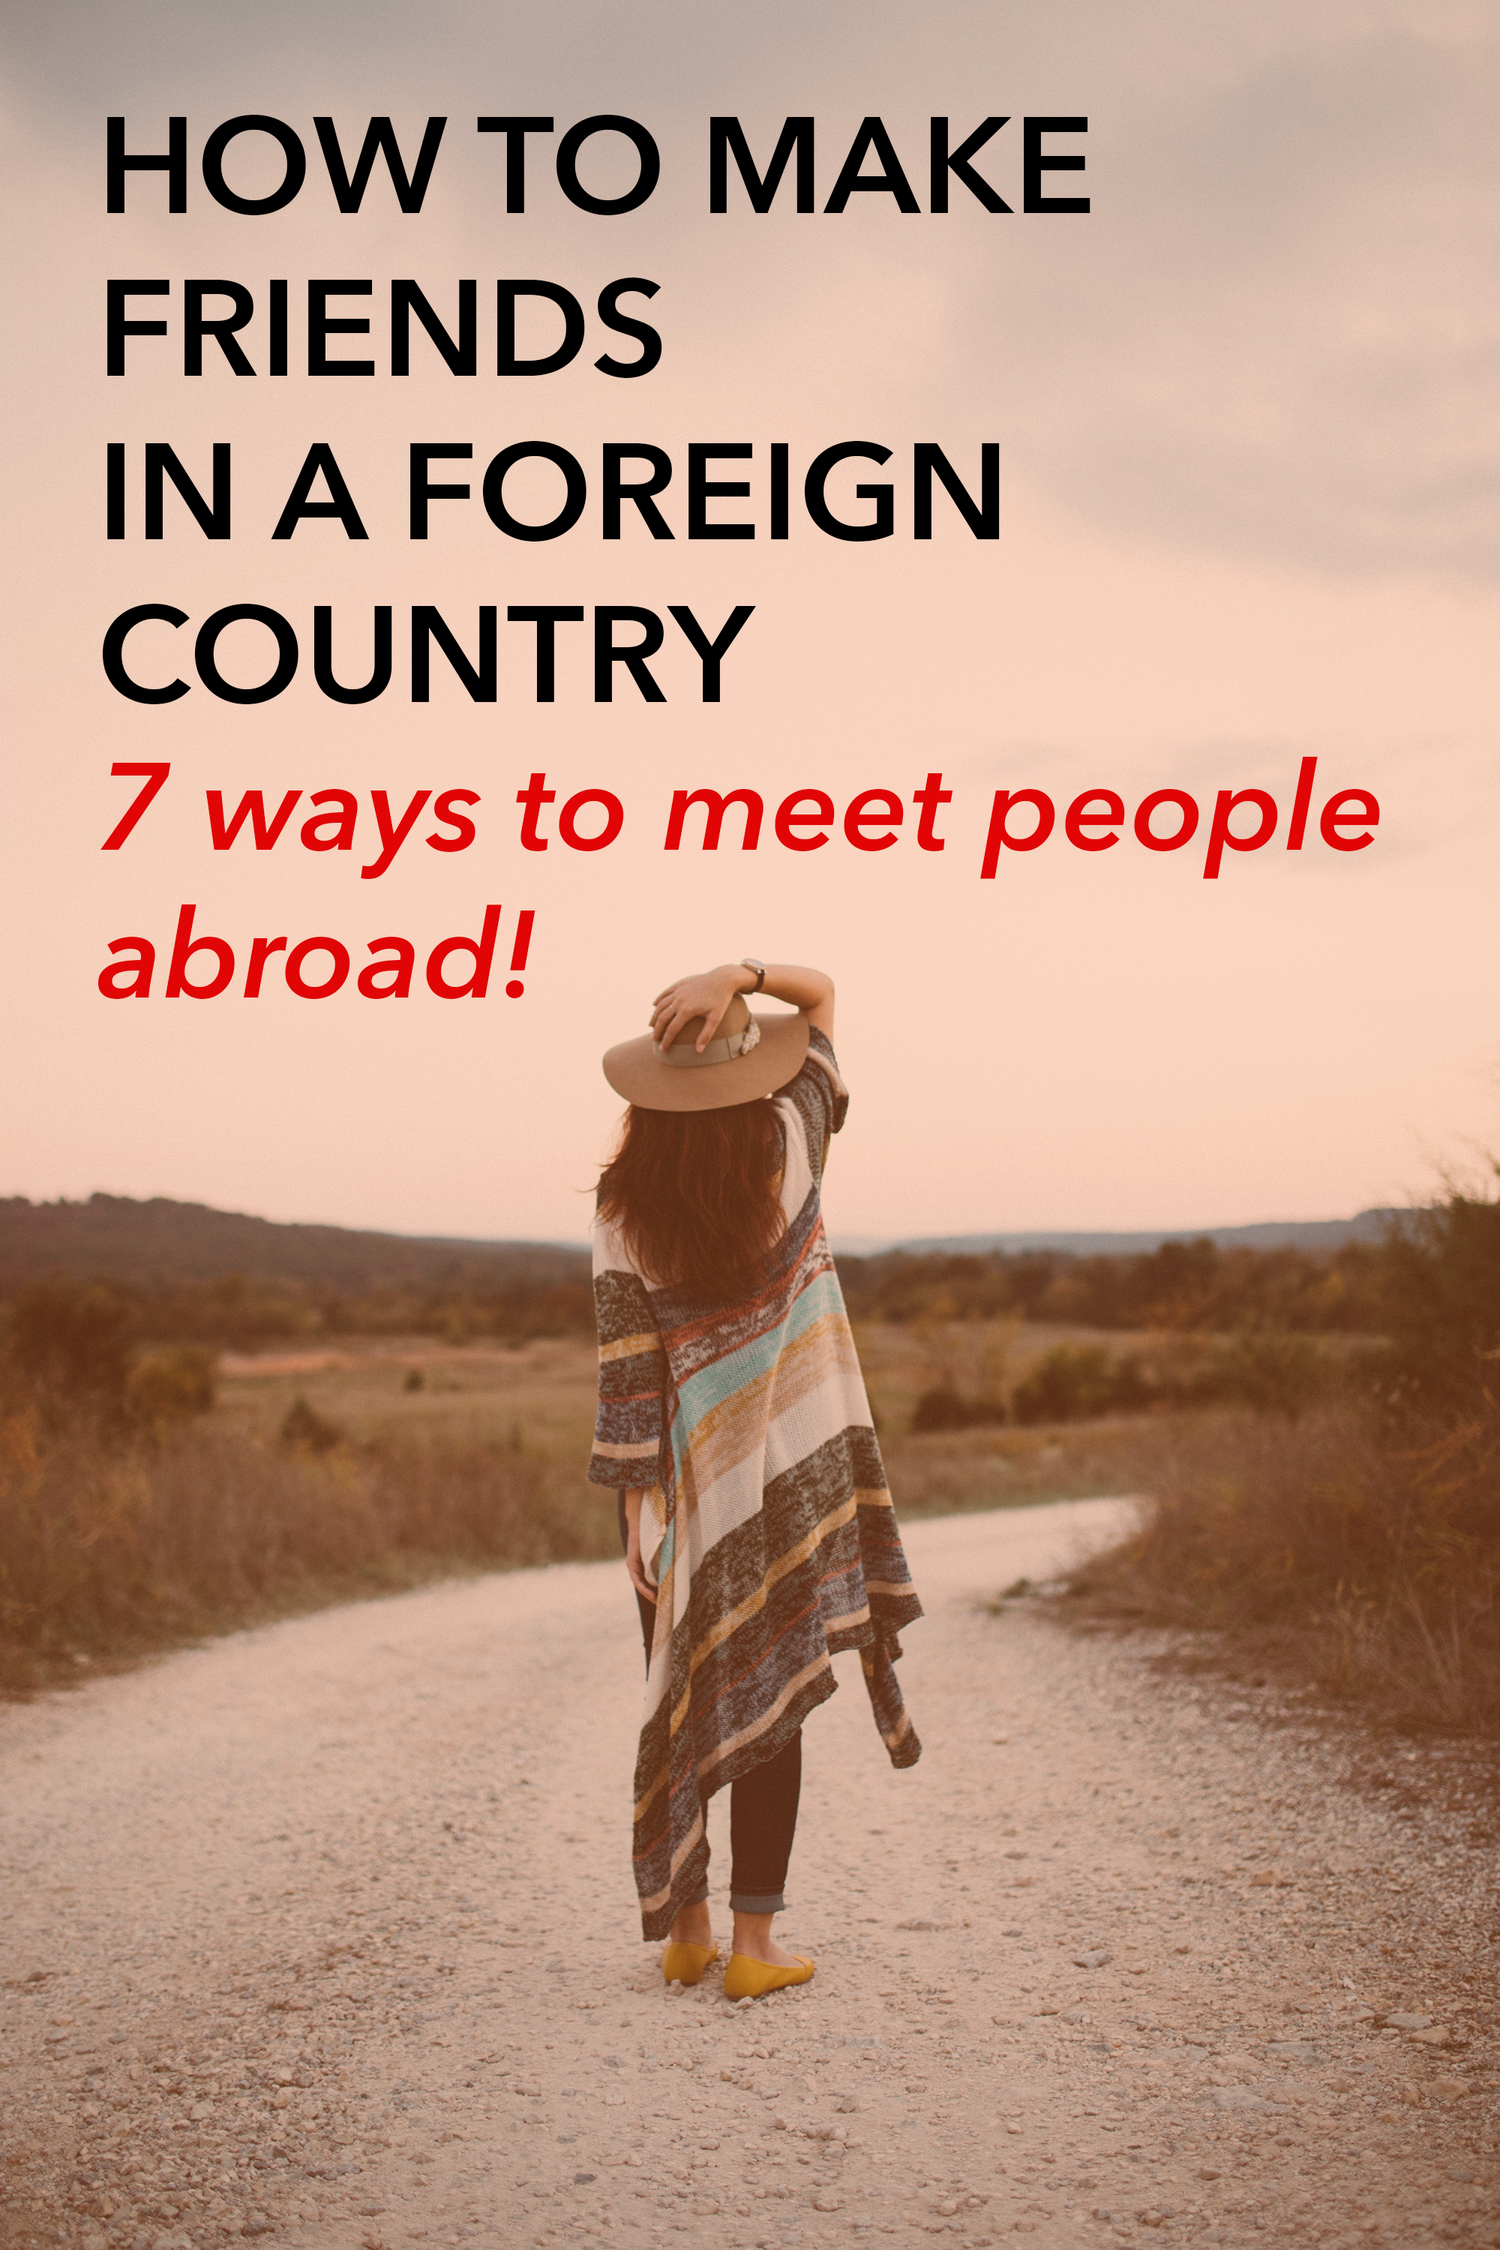 How+to+make+friends+in+a+foreign+country!+Great+tips+for+moving+abroad,+solo+travel,+or+any+situation+where+you're+moving+somewhere+new.png